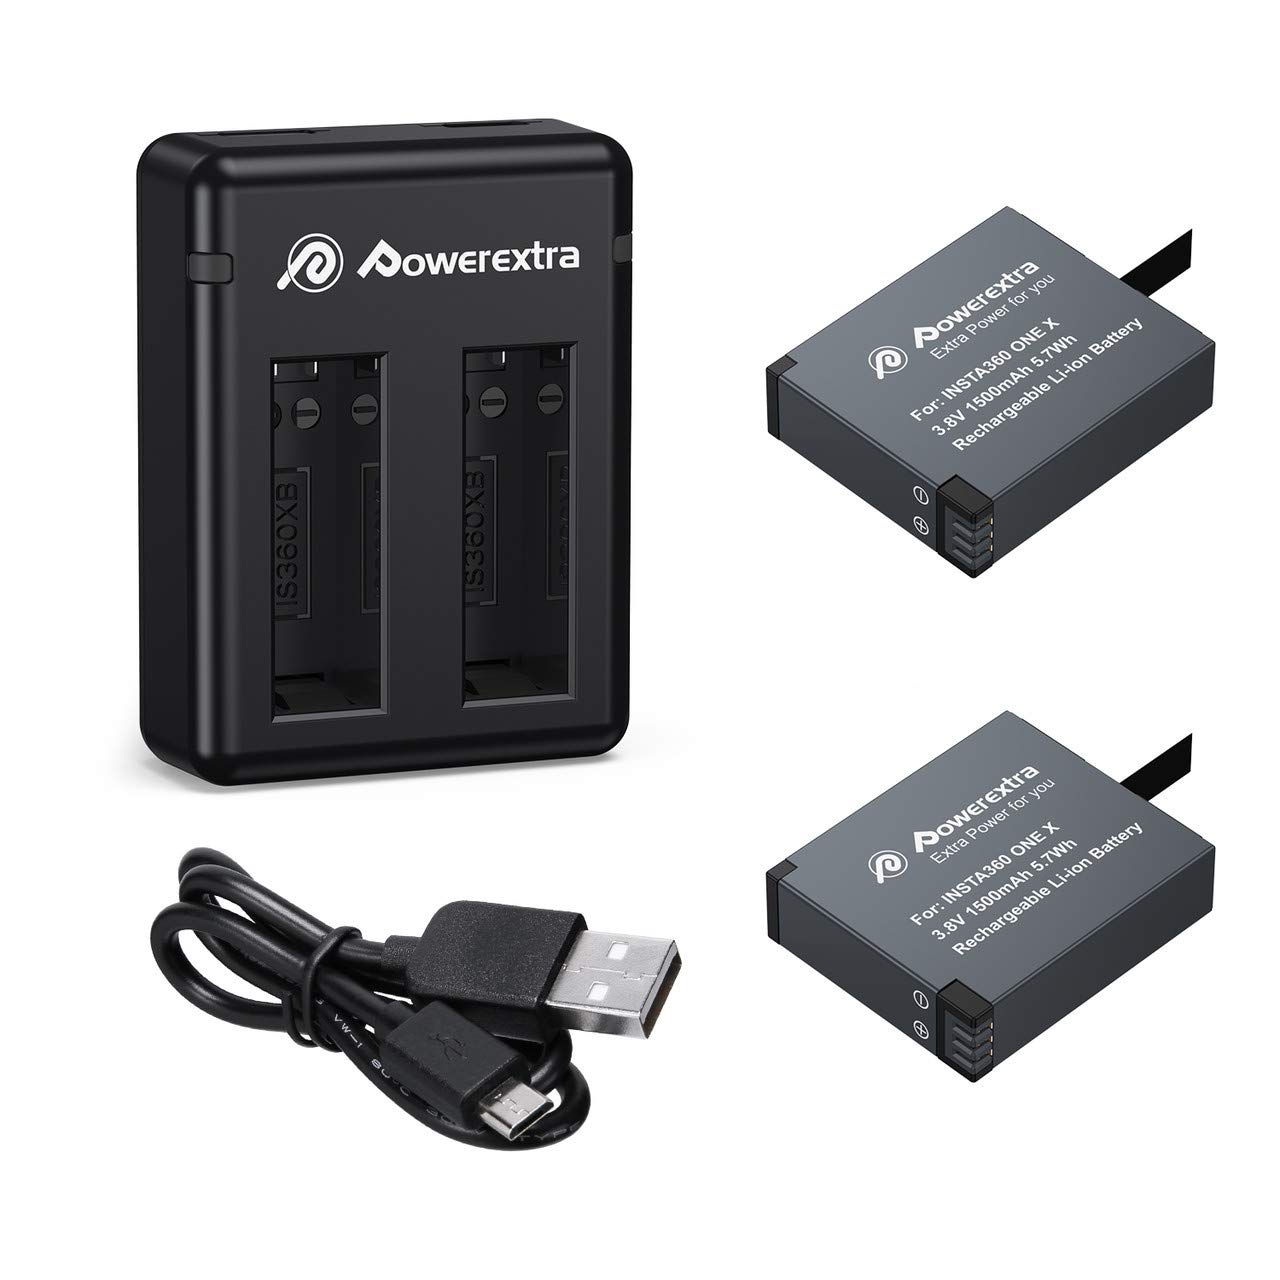 Powerextra 2 x 1500mAh Battery and Charger Compatible with Insta360 ONE X by Powerextra